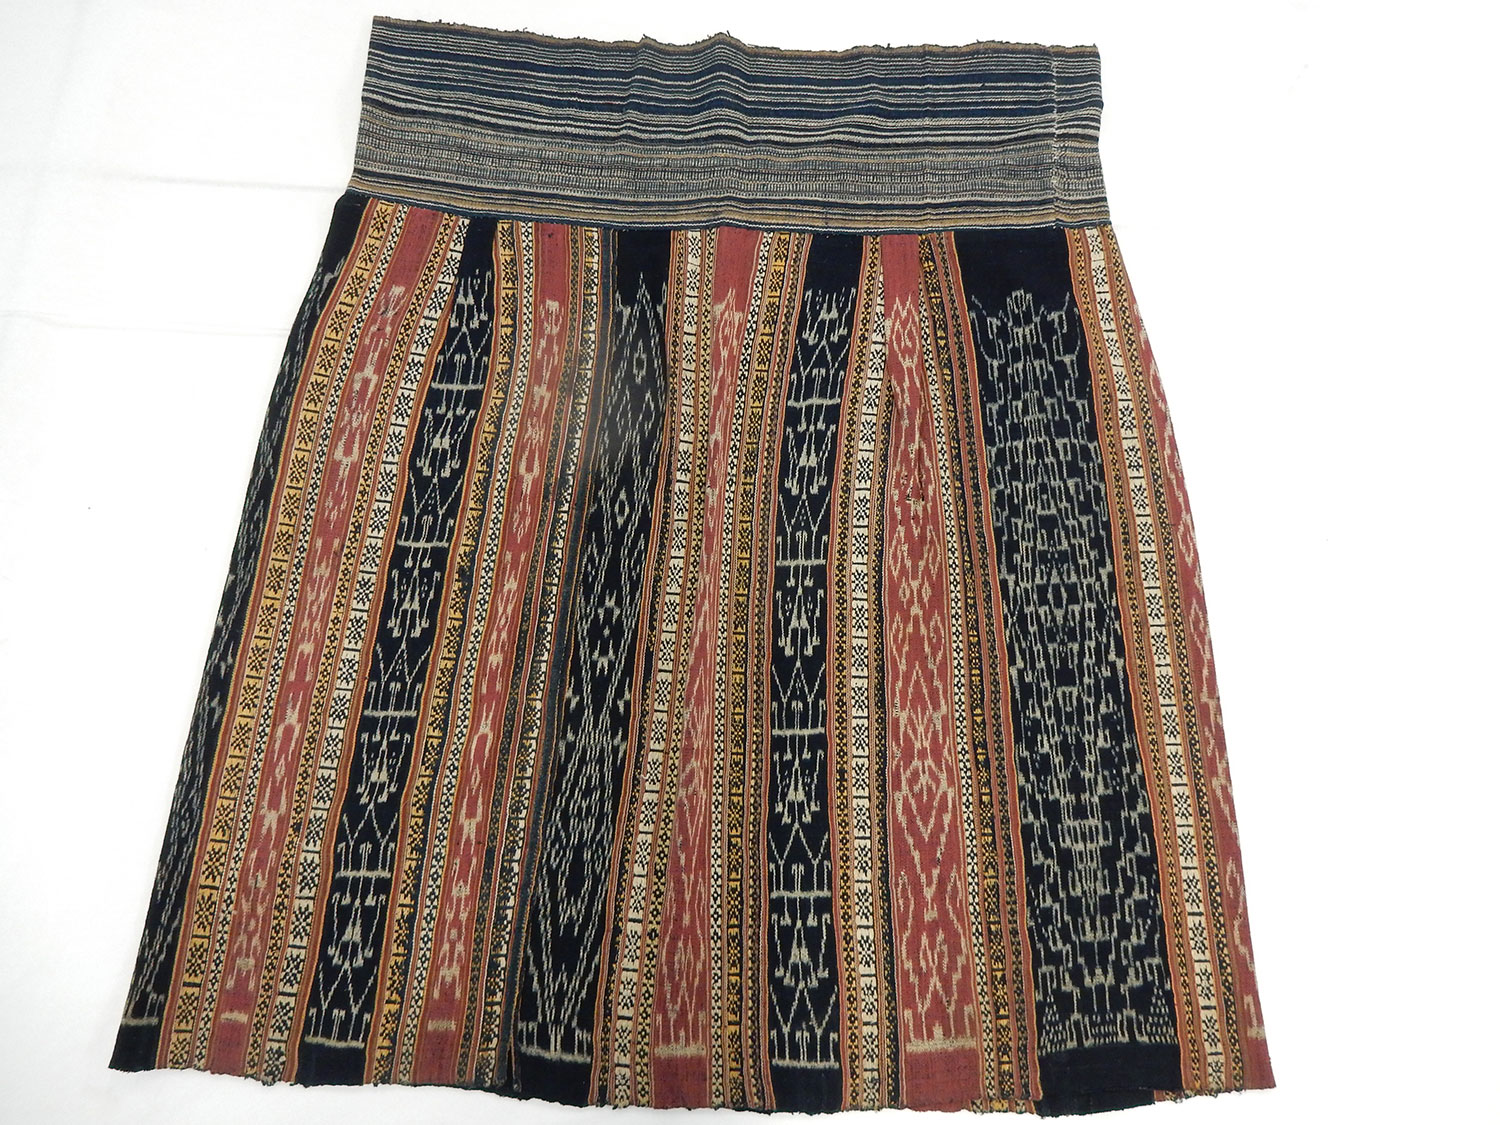 Woman's ankle-length straight wrapover funerary skirt or Pa sin or Sin mi of wool decorated with ikat tie-dyed panels and woven patterns: Asia, South East Asia, North East Laos, Houaphan Province, Sam Neua, Tai, early 20th century. Museum reference A.1995.93.